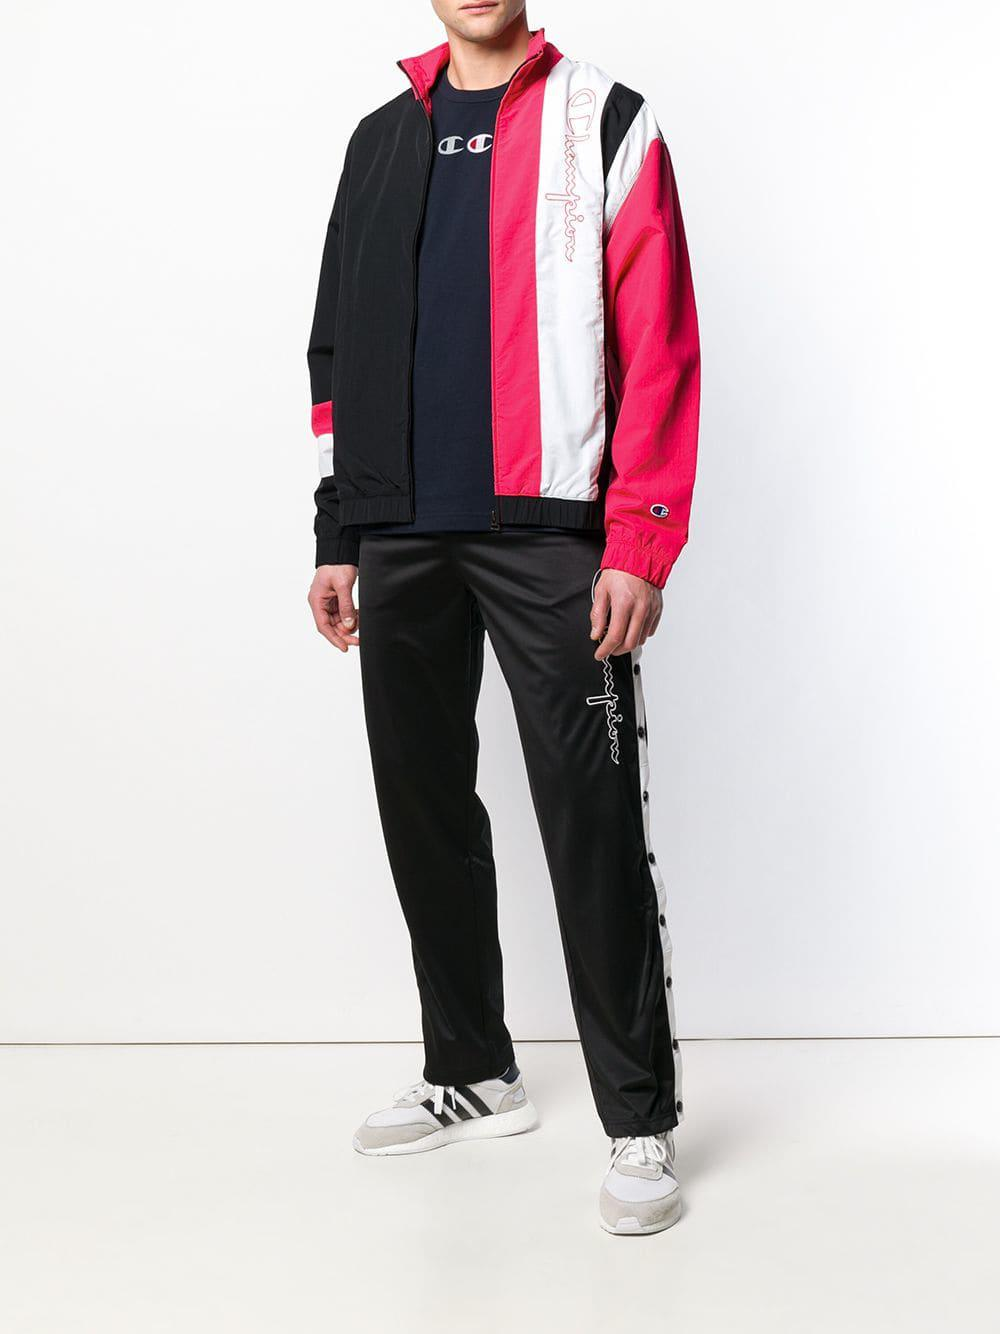 f1f04a7066c2a Lyst - Champion Vertical Stripe Track Jacket in Black for Men